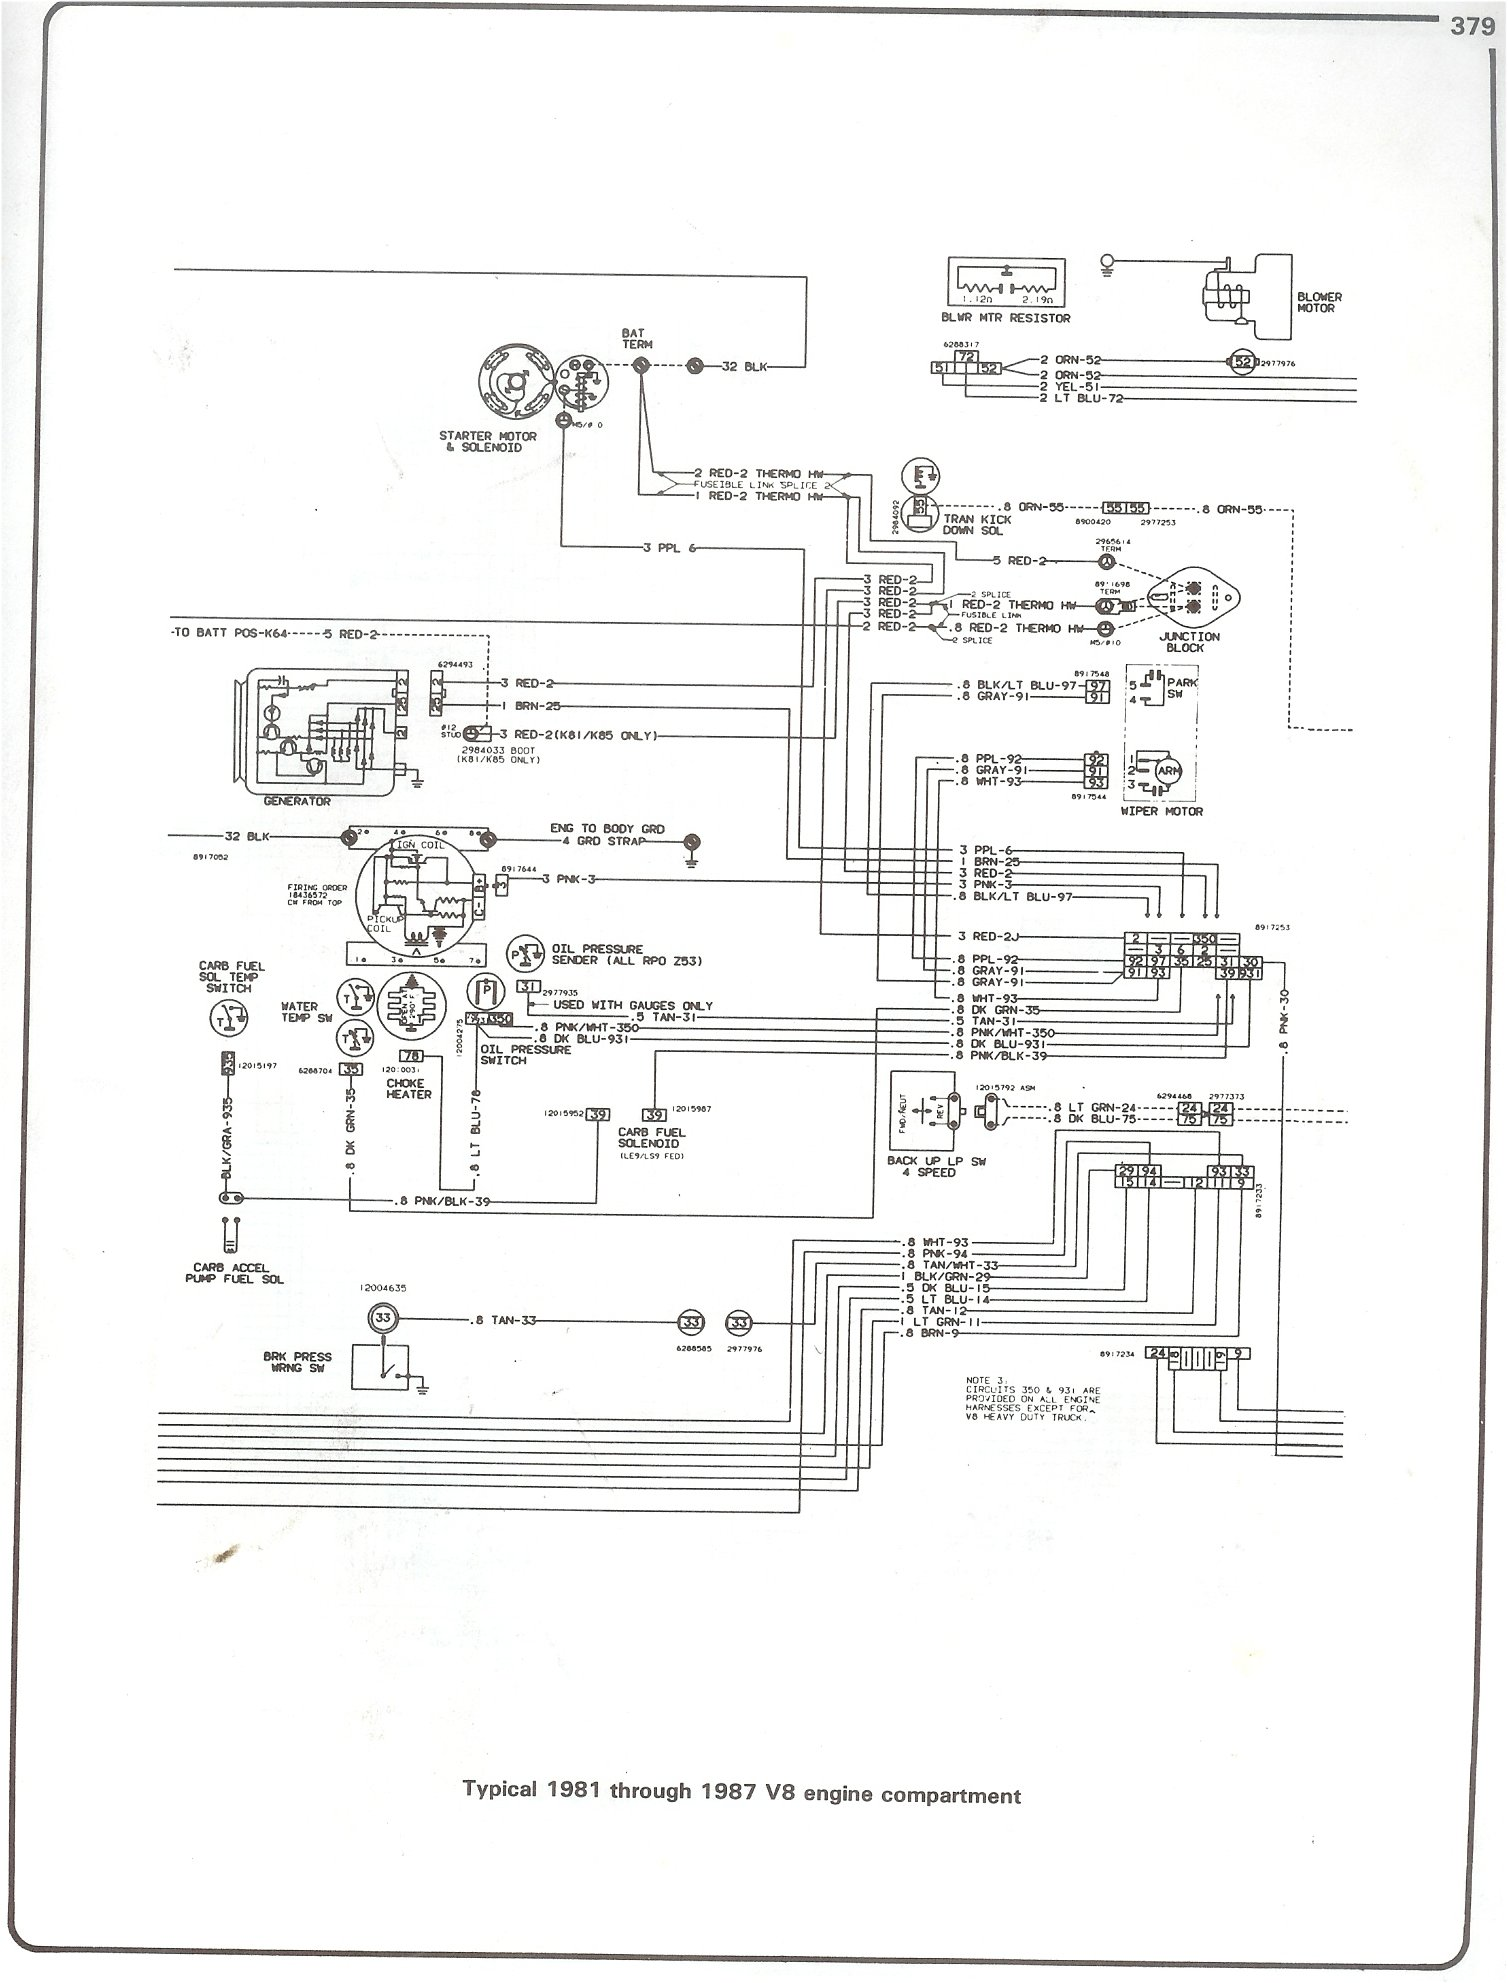 chevelle wiring diagram 1972 7 pin trailer socket uk light switch toyskids co electrical diagrams chevy only page 2 truck forum 1965 c10 brake lamp